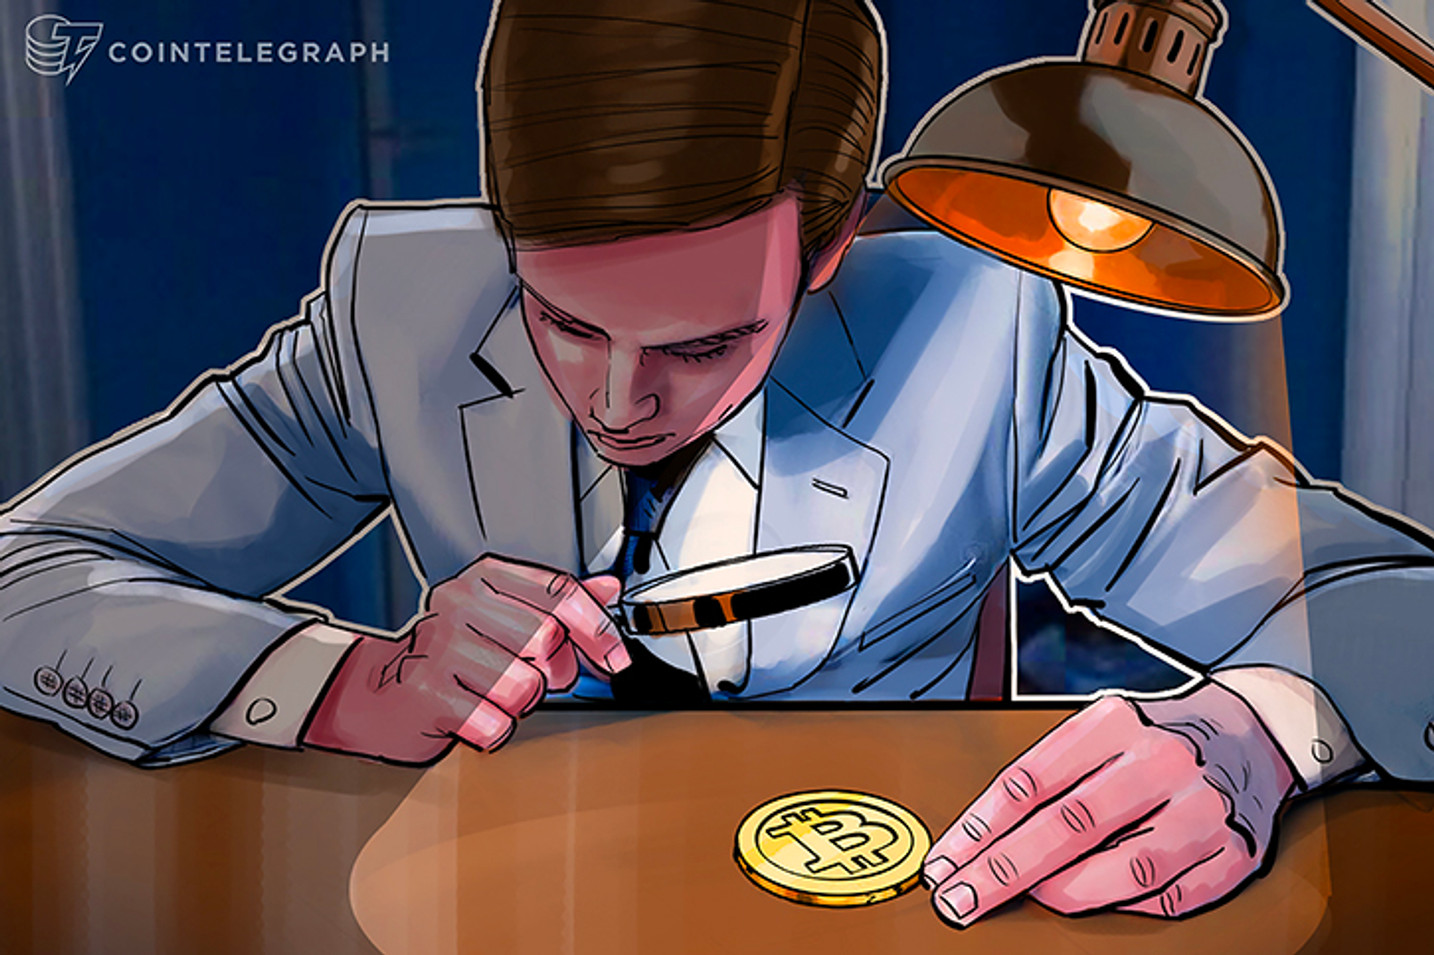 New Report: Bitcoin Drug Money Laundering Is Highly Centralized